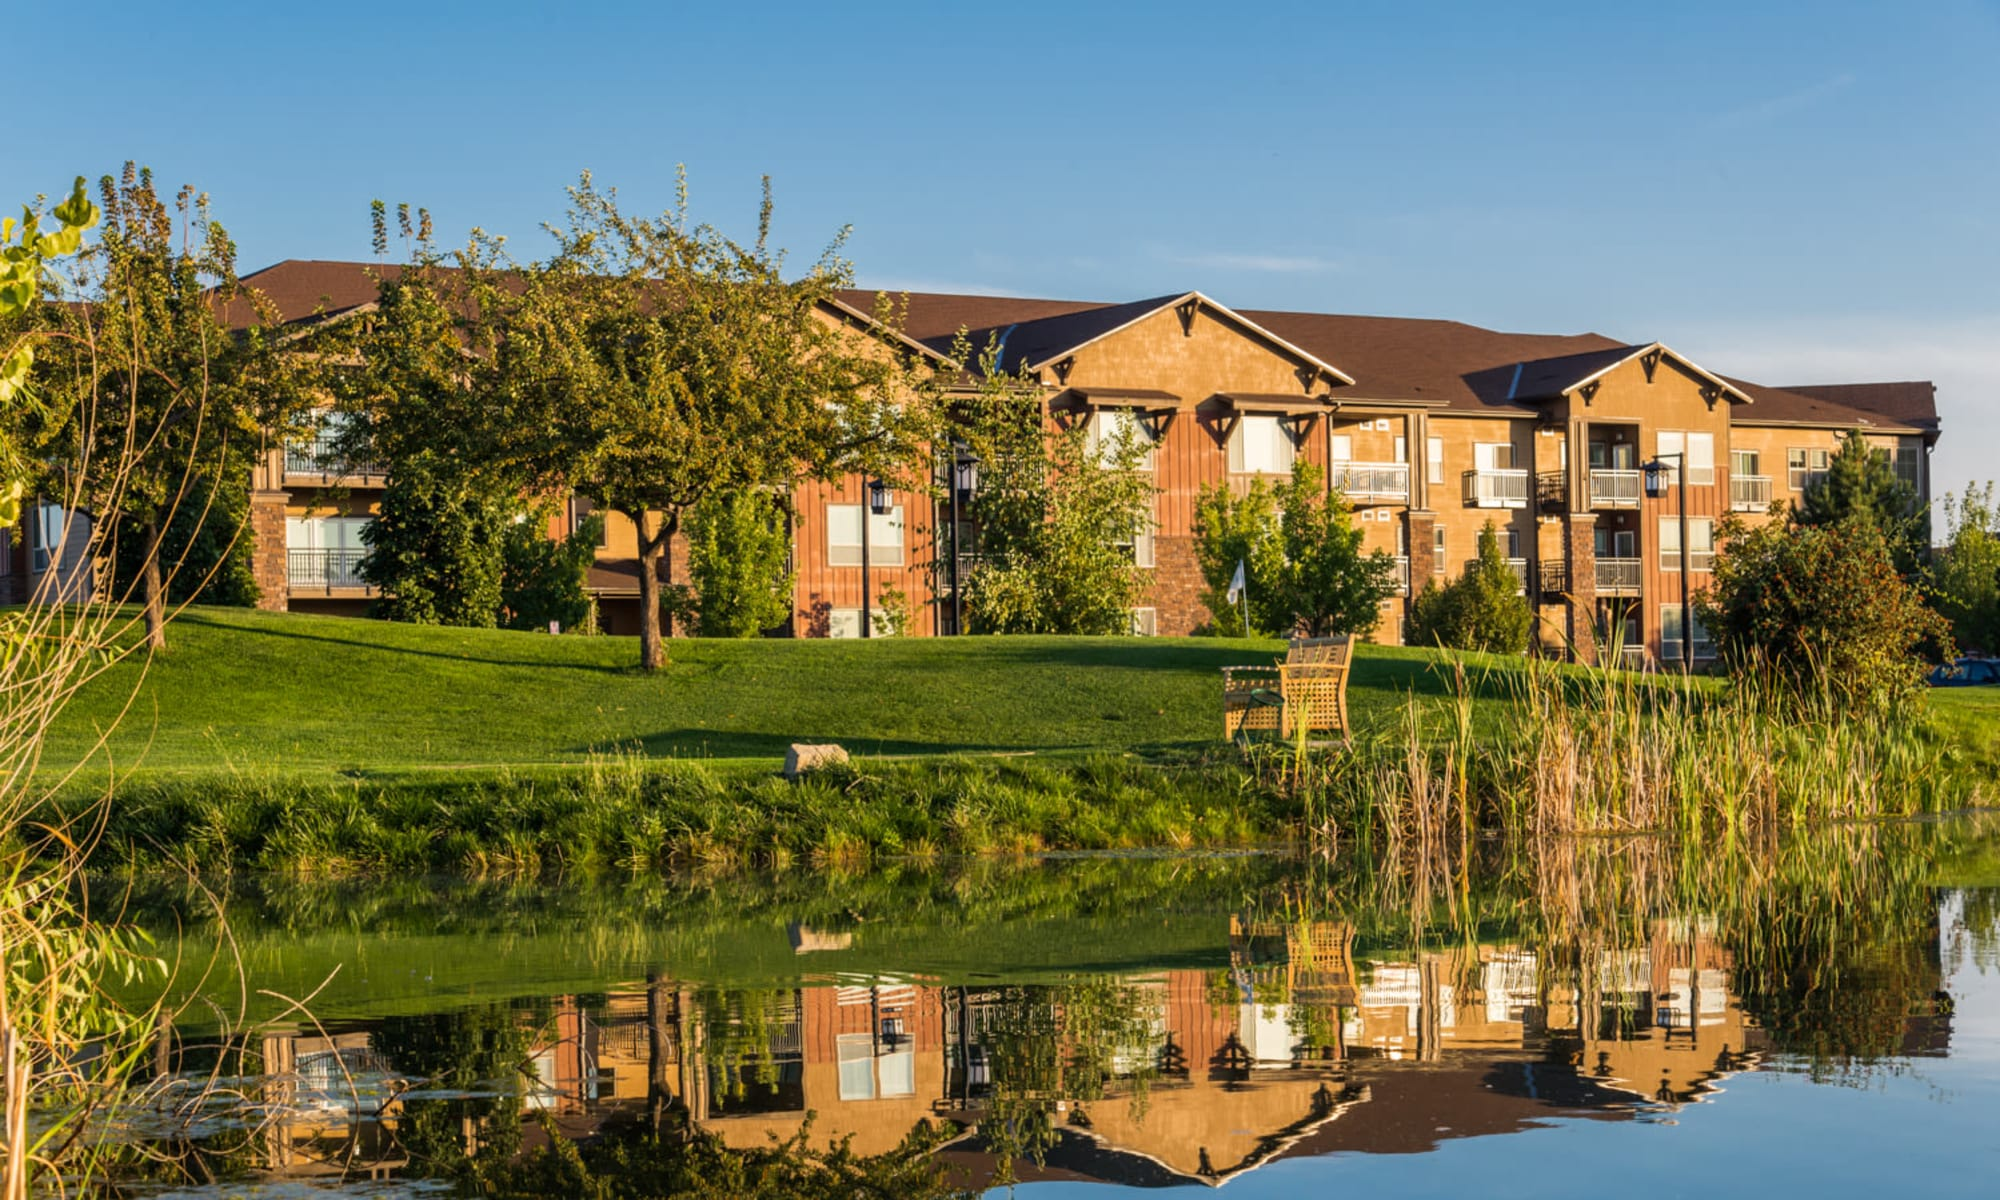 The building exterior and pond at Touchmark at Meadow Lake Village in Meridian, Idaho